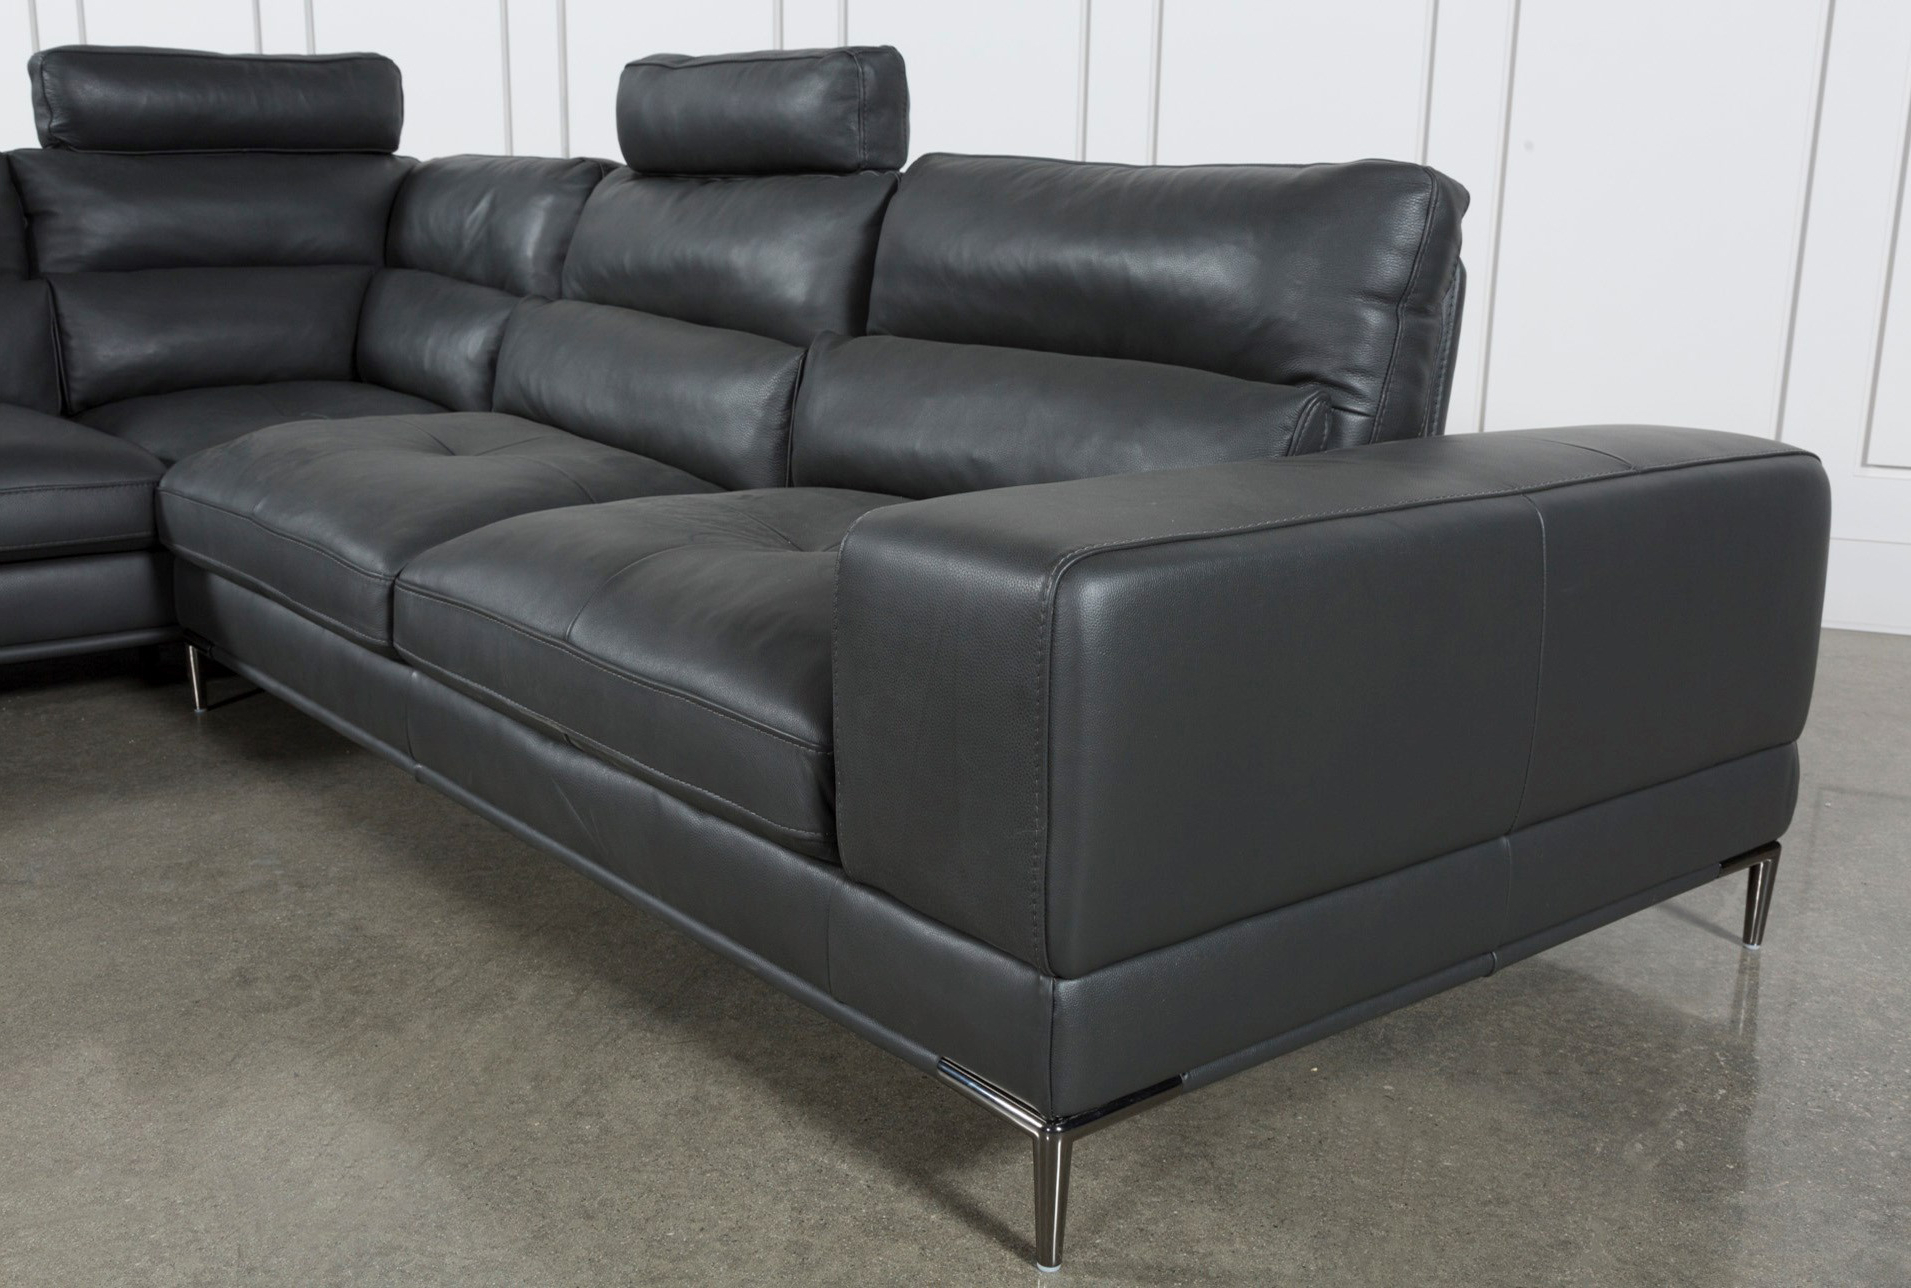 Well Liked Tenny Dark Grey 2 Piece Right Facing Chaise Sectional W/2 Headrest Pertaining To Tenny Dark Grey 2 Piece Right Facing Chaise Sectionals With 2 Headrest (View 2 of 20)